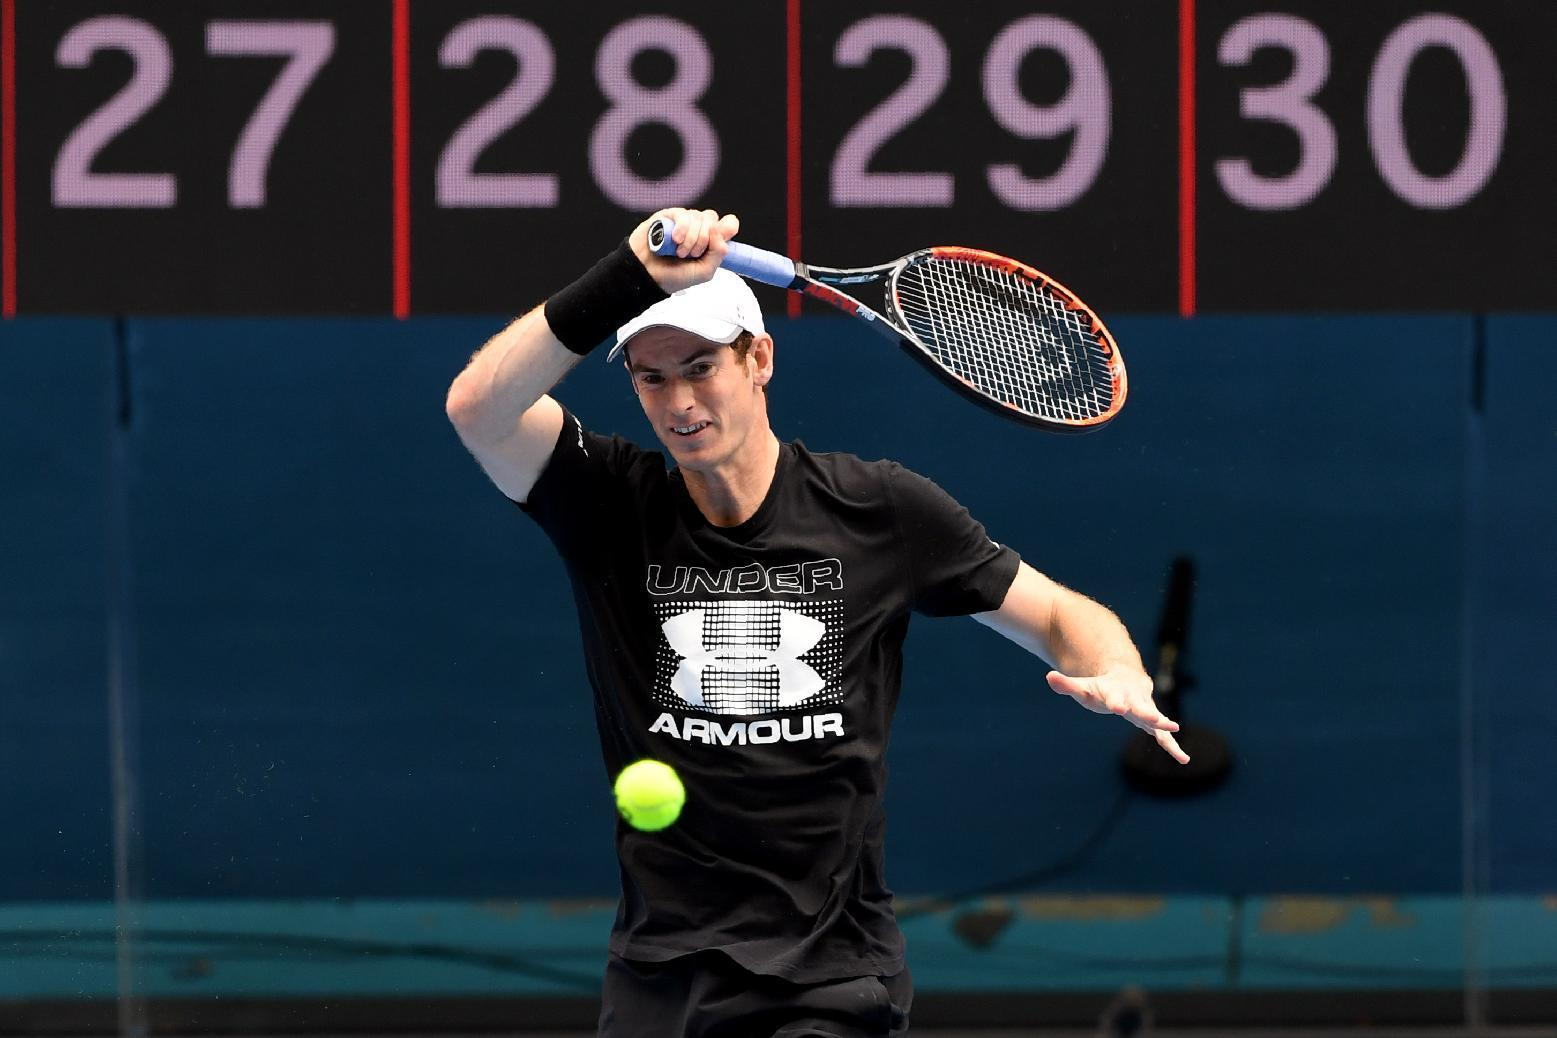 Tennis - Sir Andy to be treated like 'royalty' in Melbourne